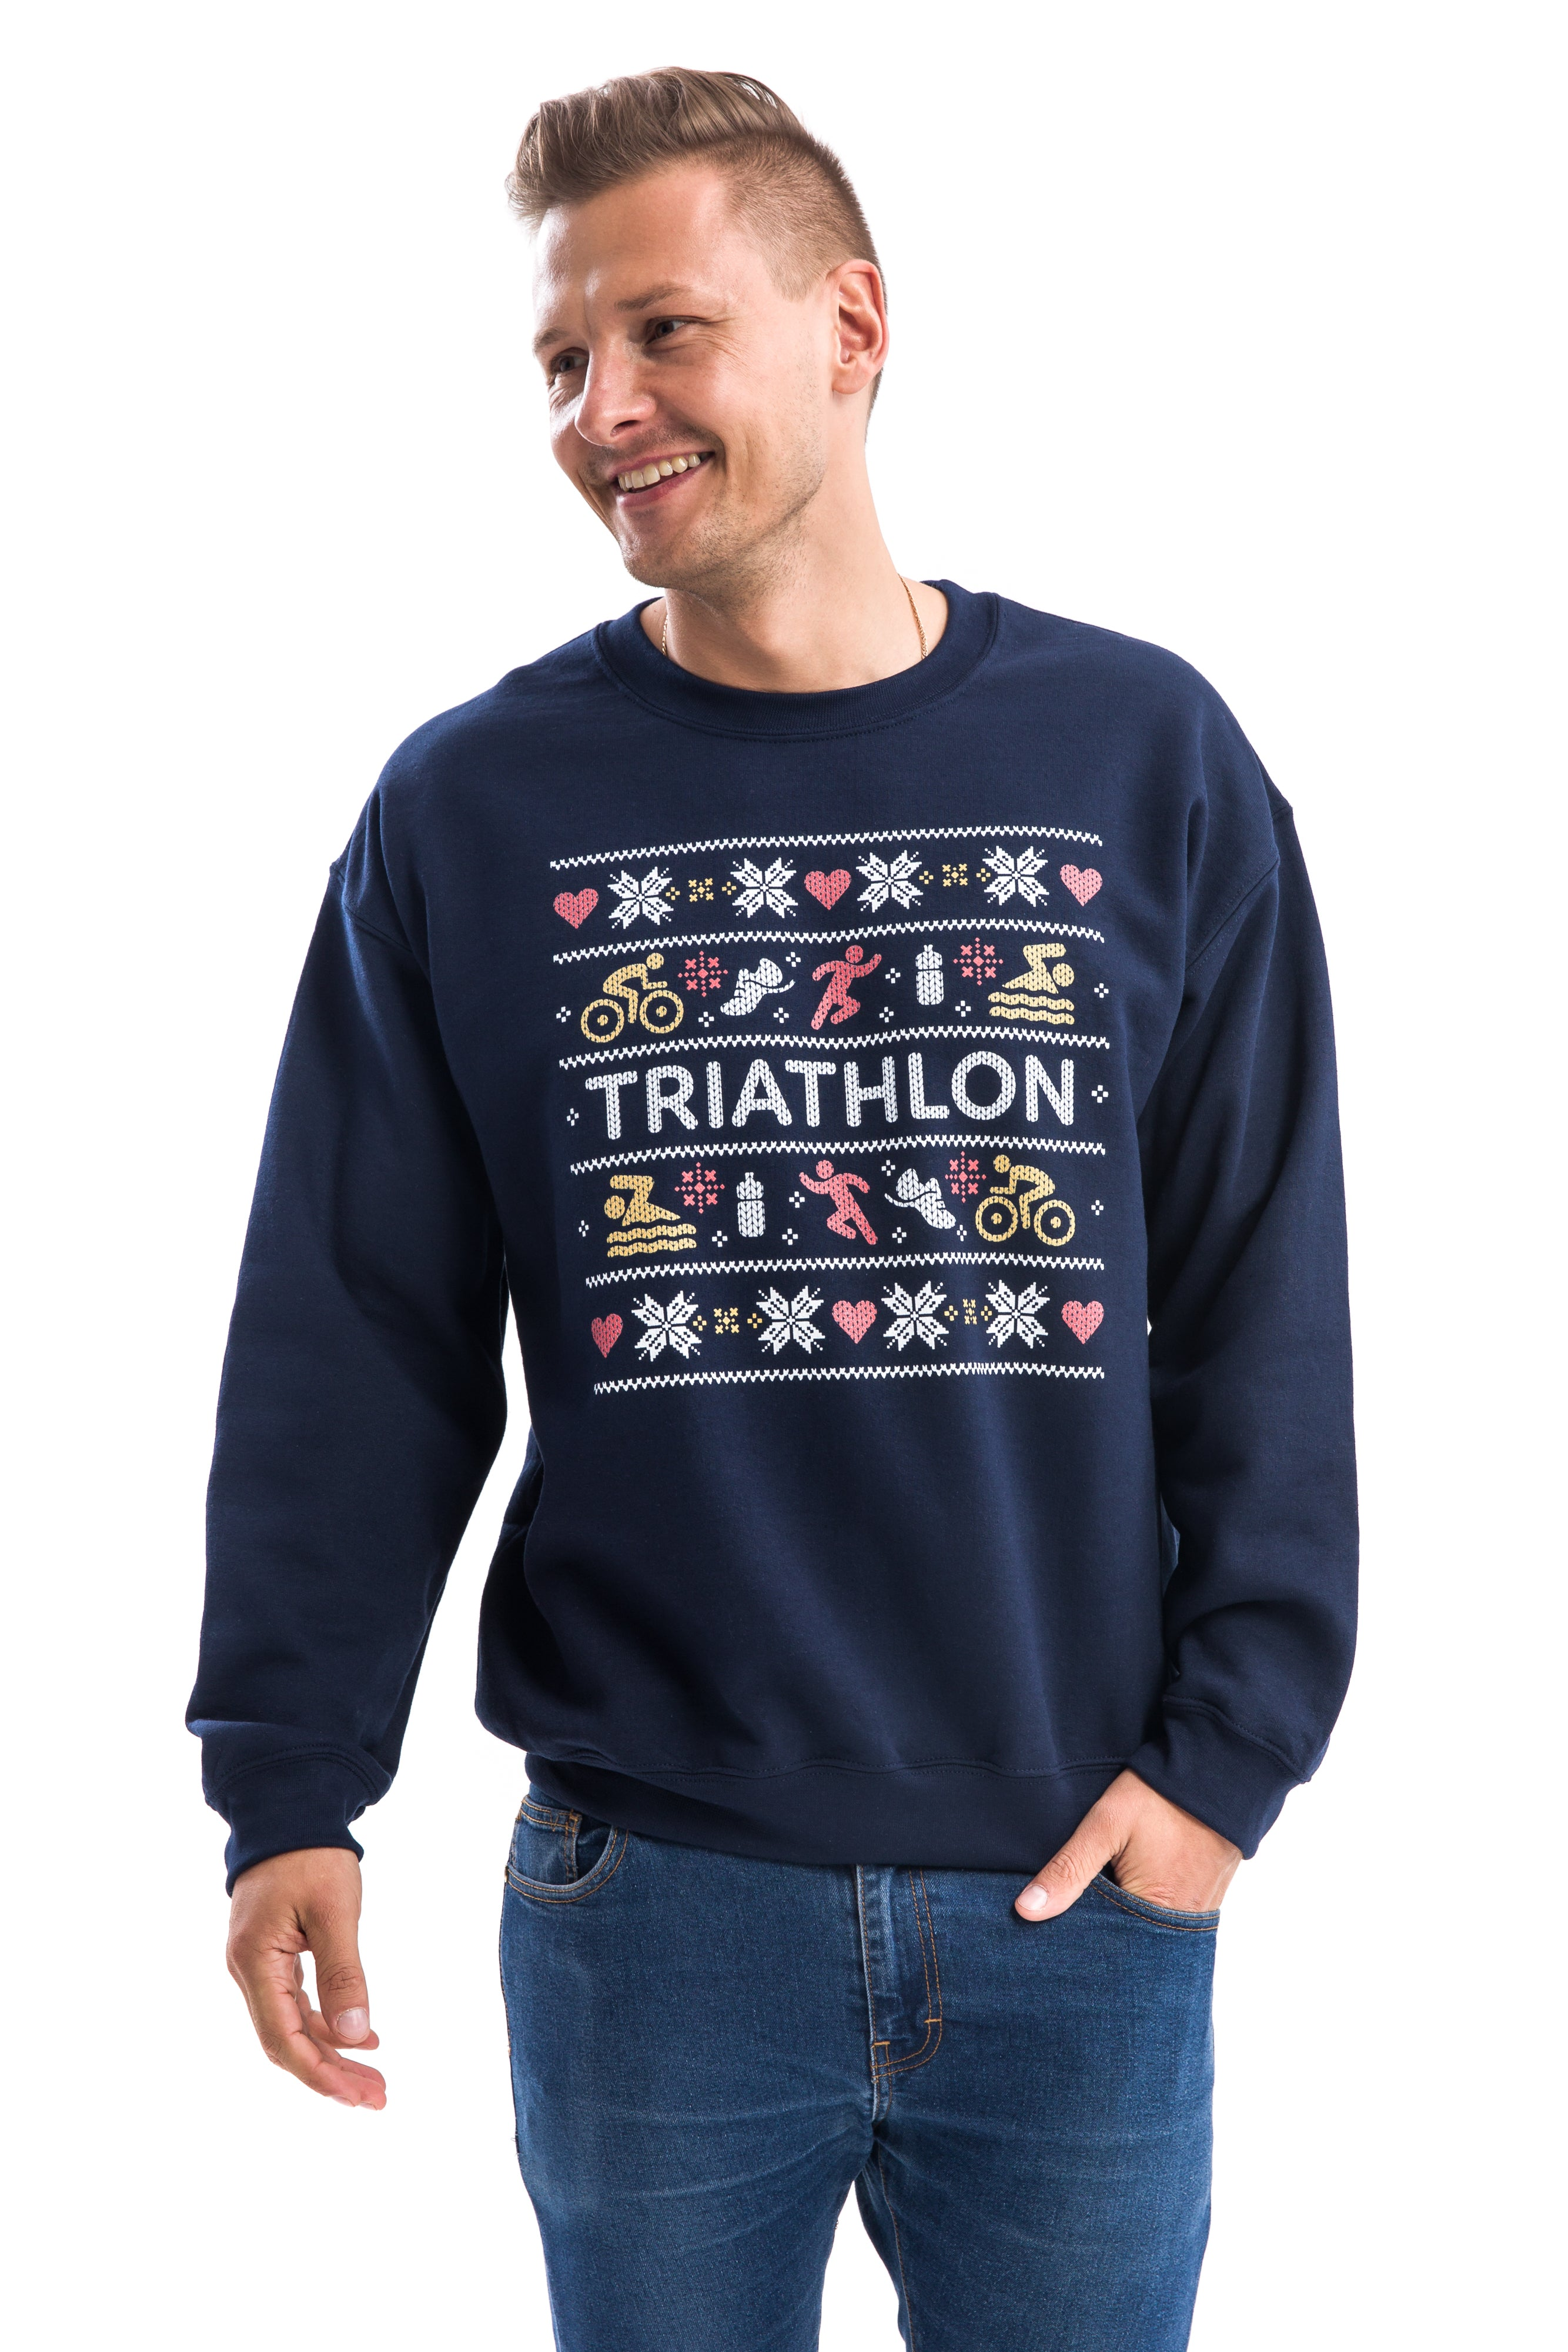 Triathlete with Triathlon Christmas Sweater